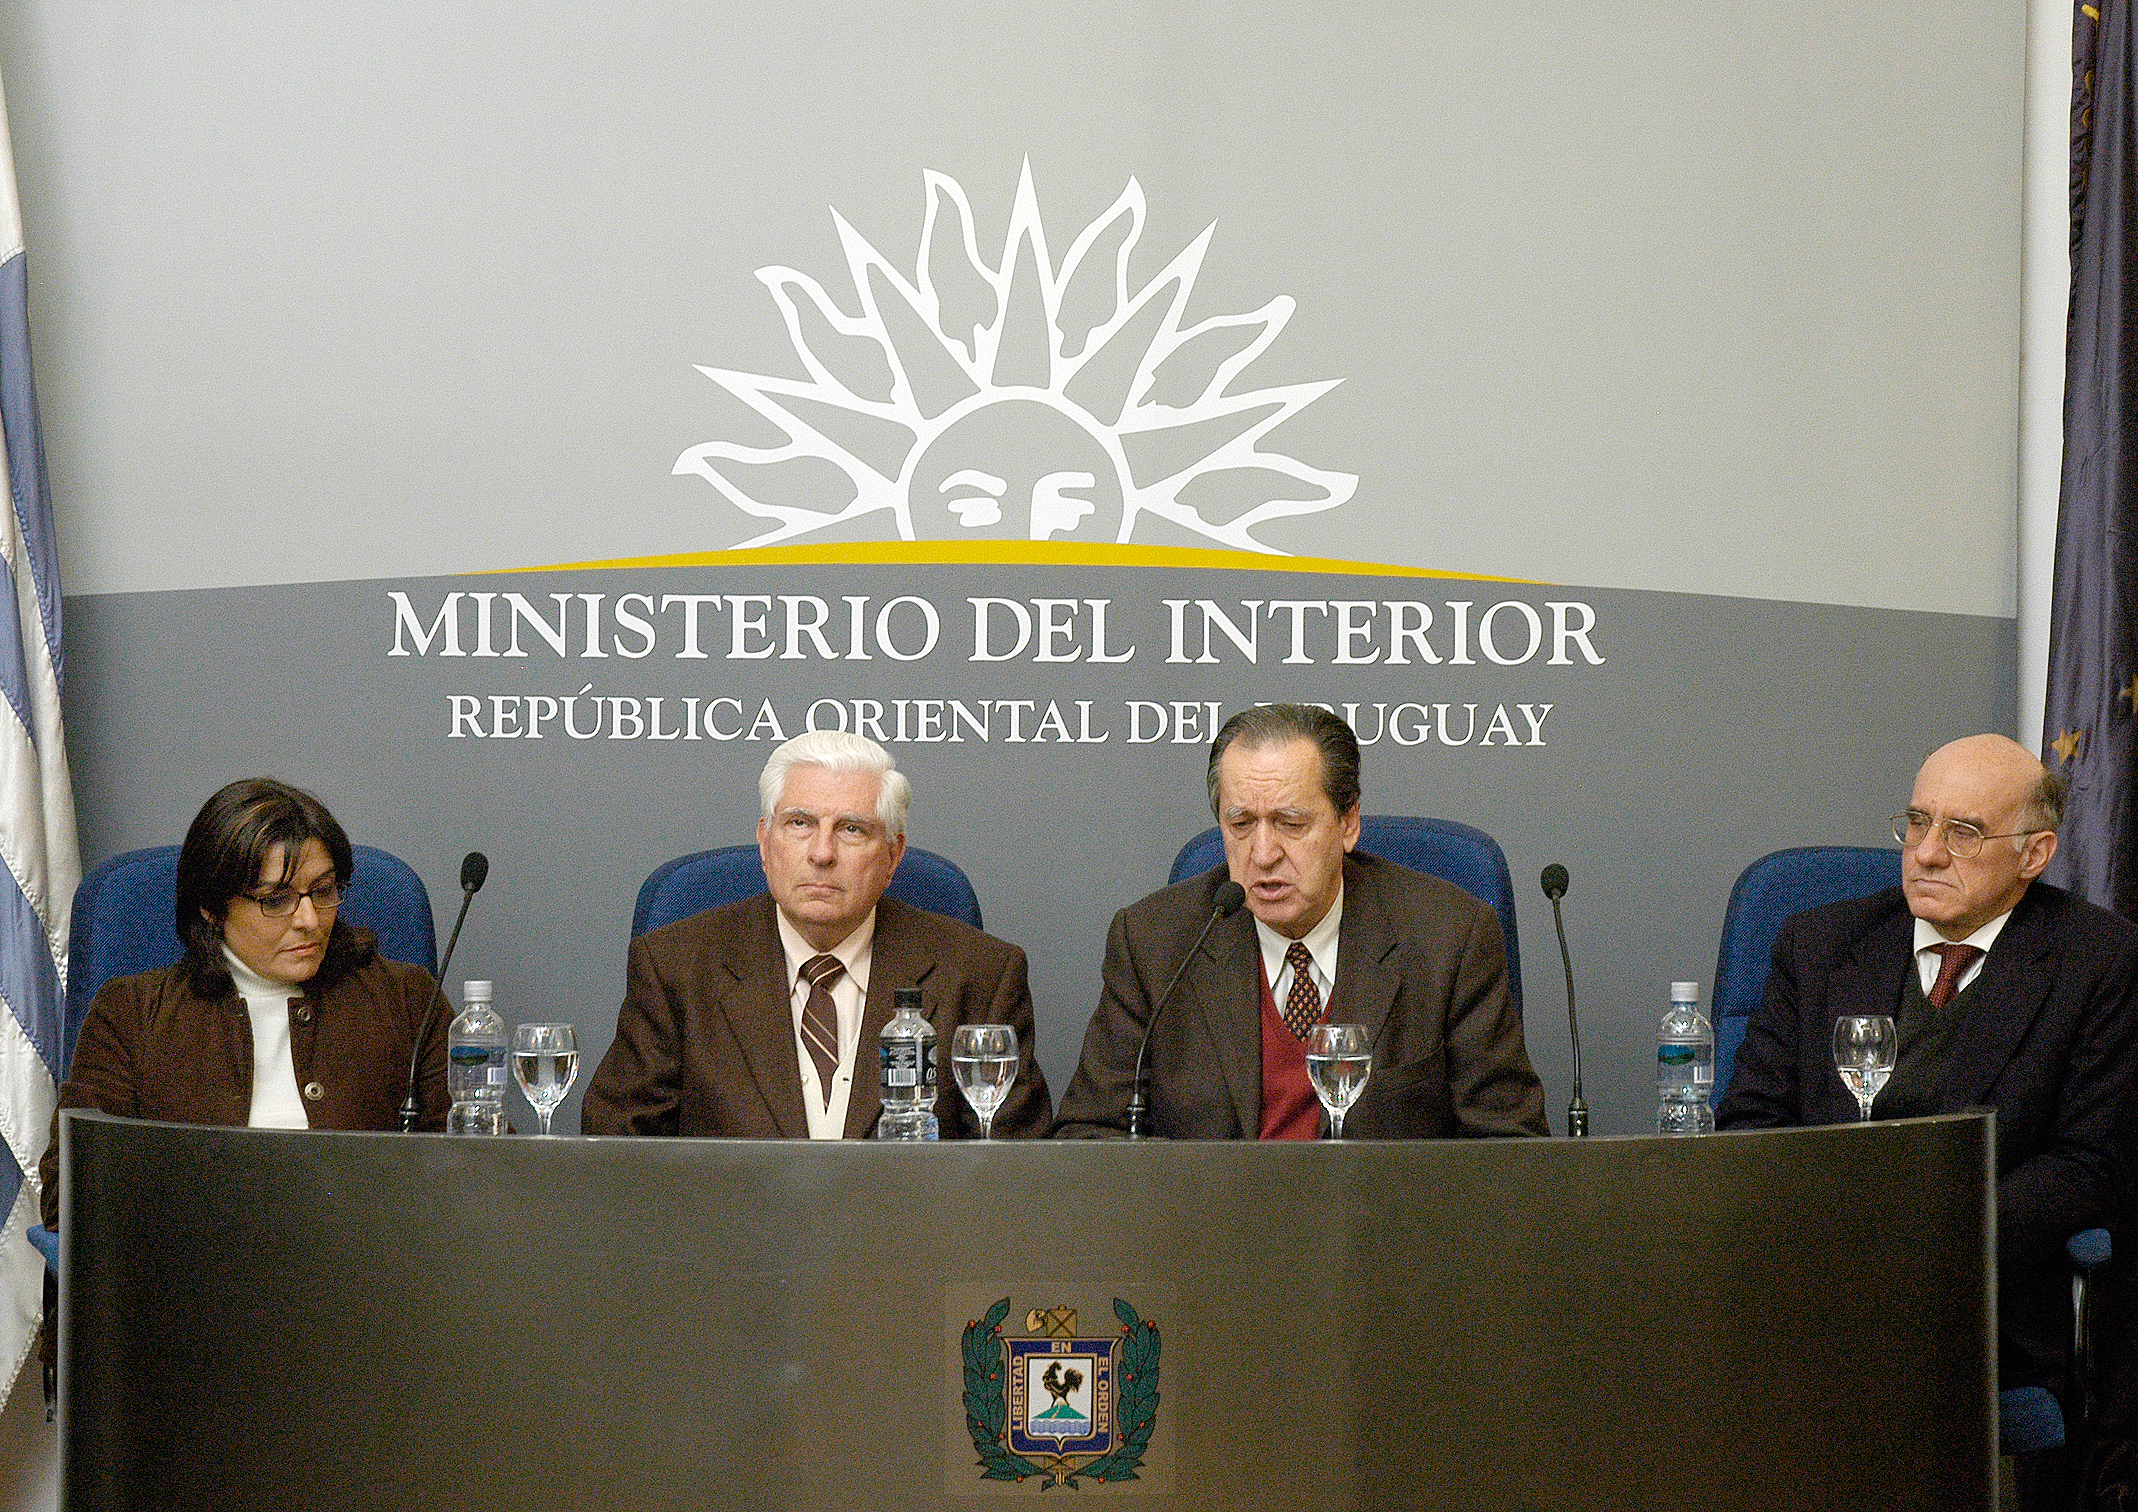 Convenio entre el ministerio del interior y el banco for Ministerio del interior bs as